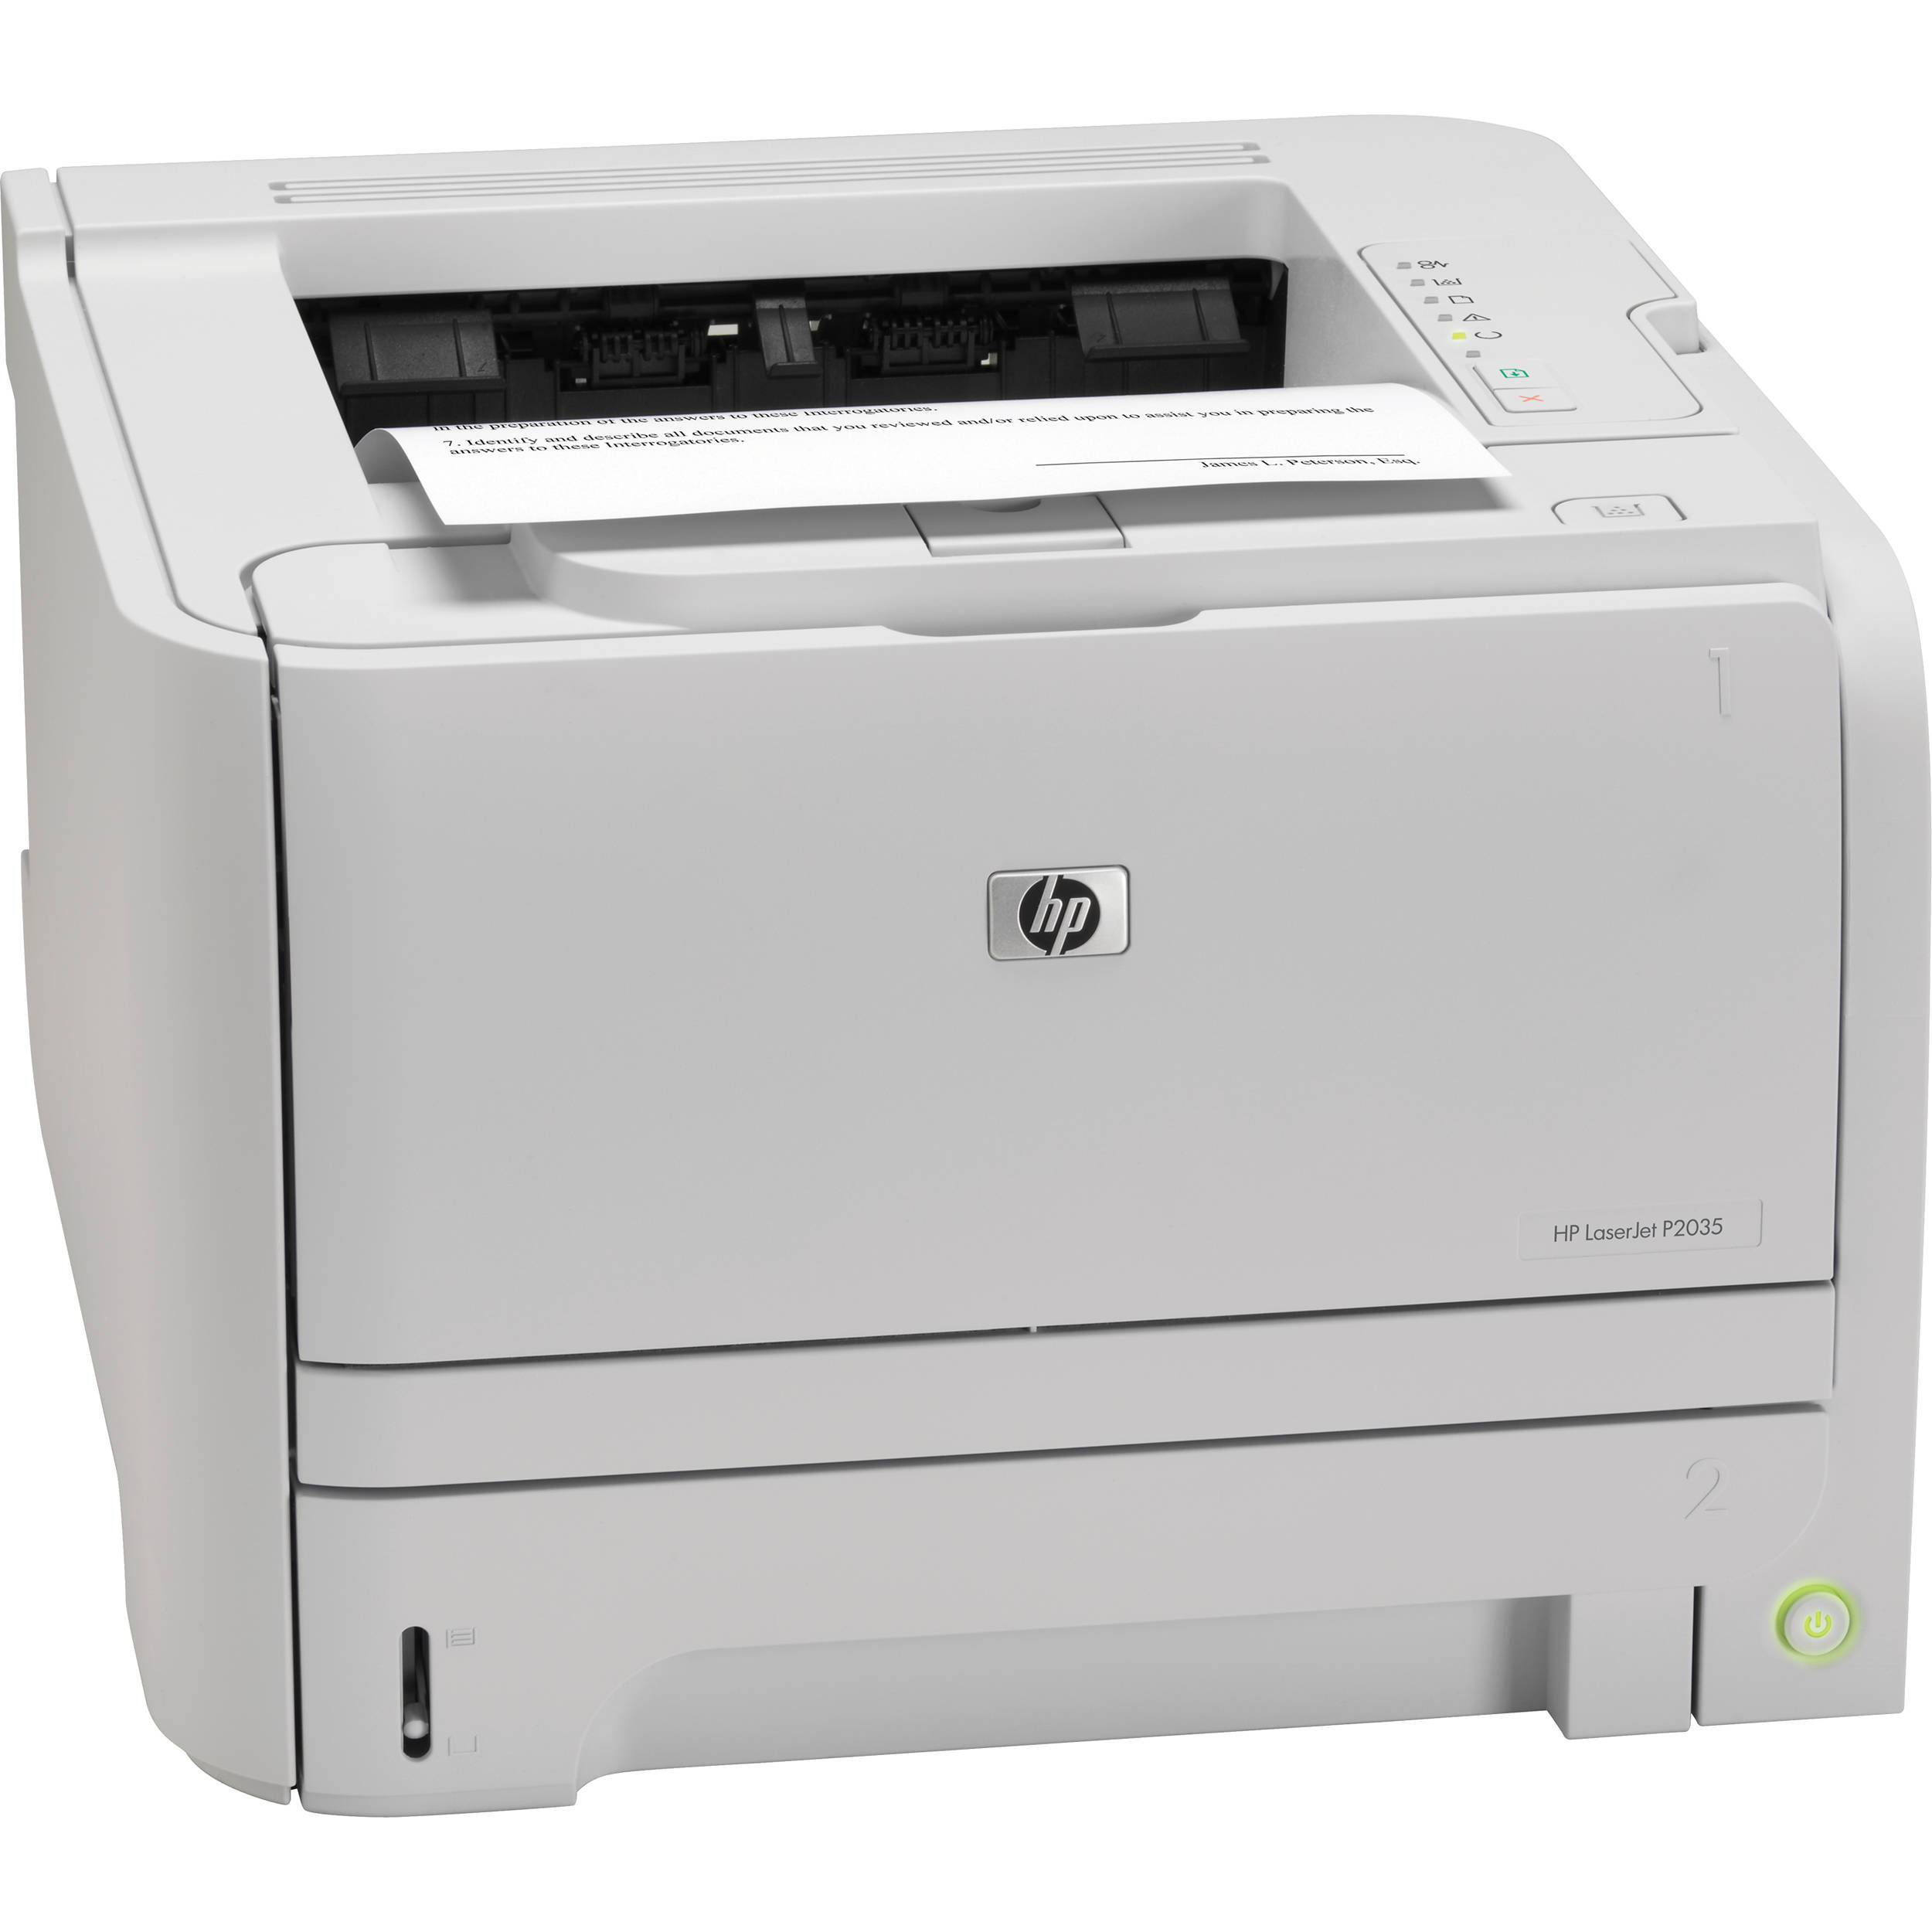 Speed 30ppm- Res 600x600dpi- 266MHz processor- 16MB Memory- Duty Cycle 25-000 pages- USB2.0 & Parallel  Supplies : CE505A